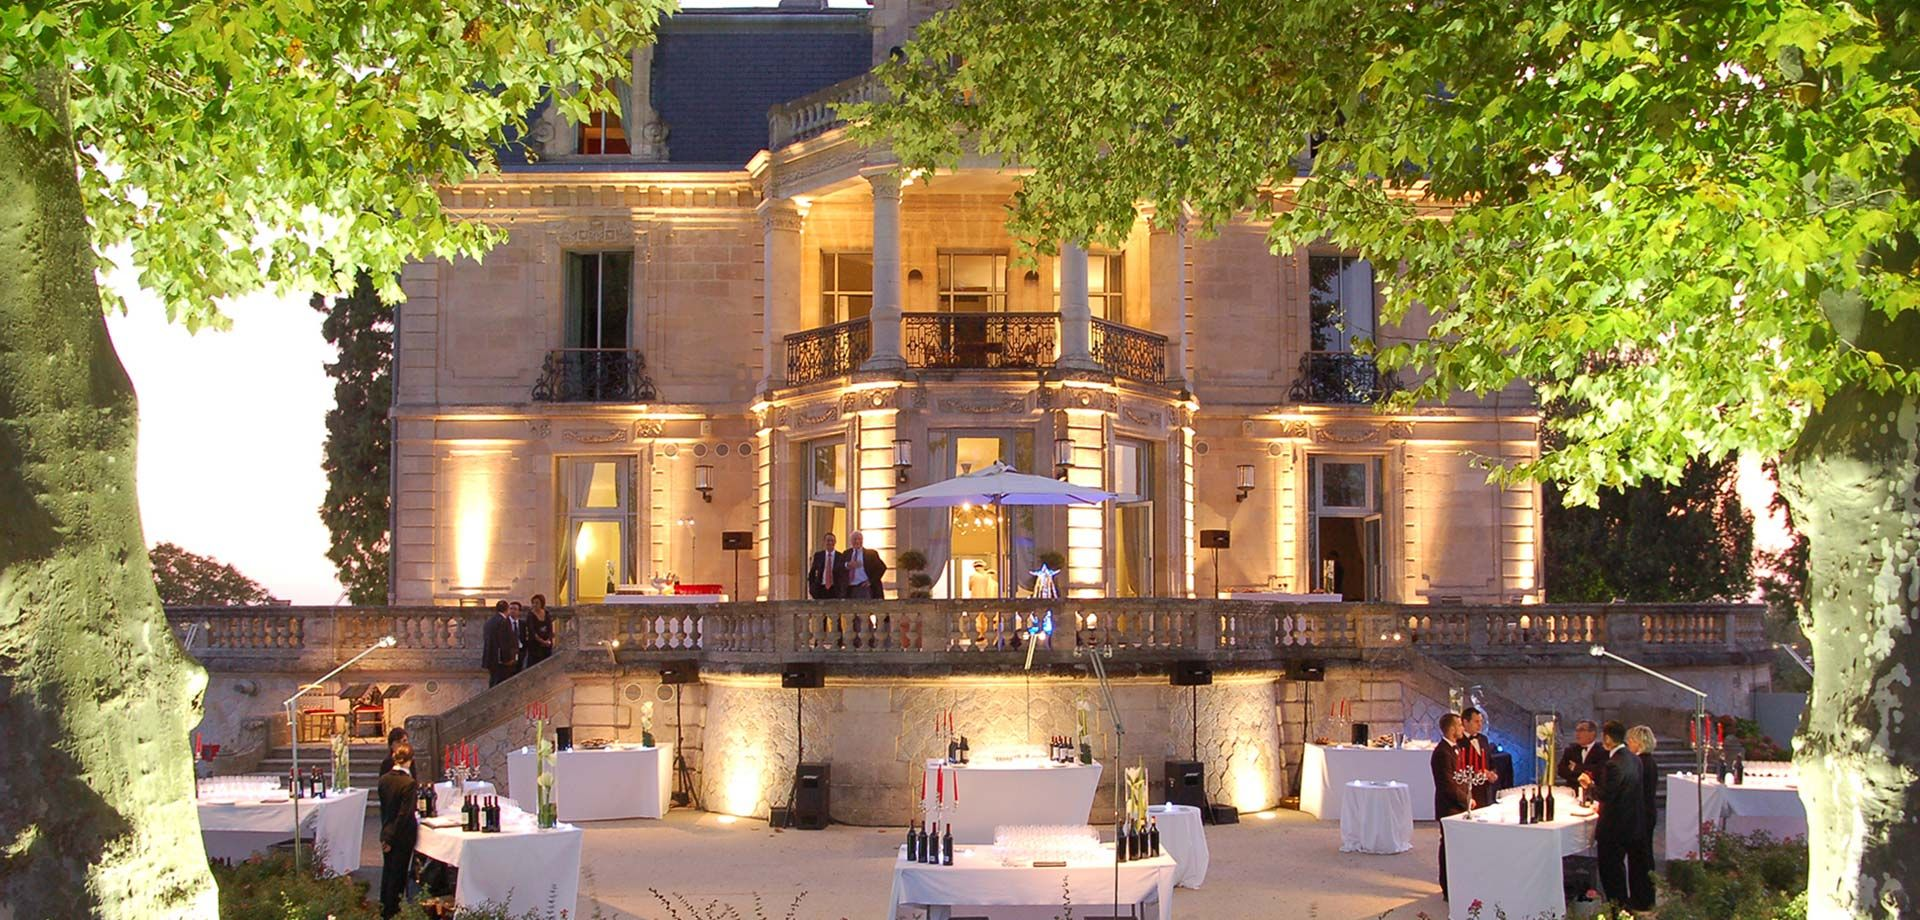 1000 images about se marier en aquitaine getting maried in aquitaine on pinterest - Chateau Pape Clement Mariage